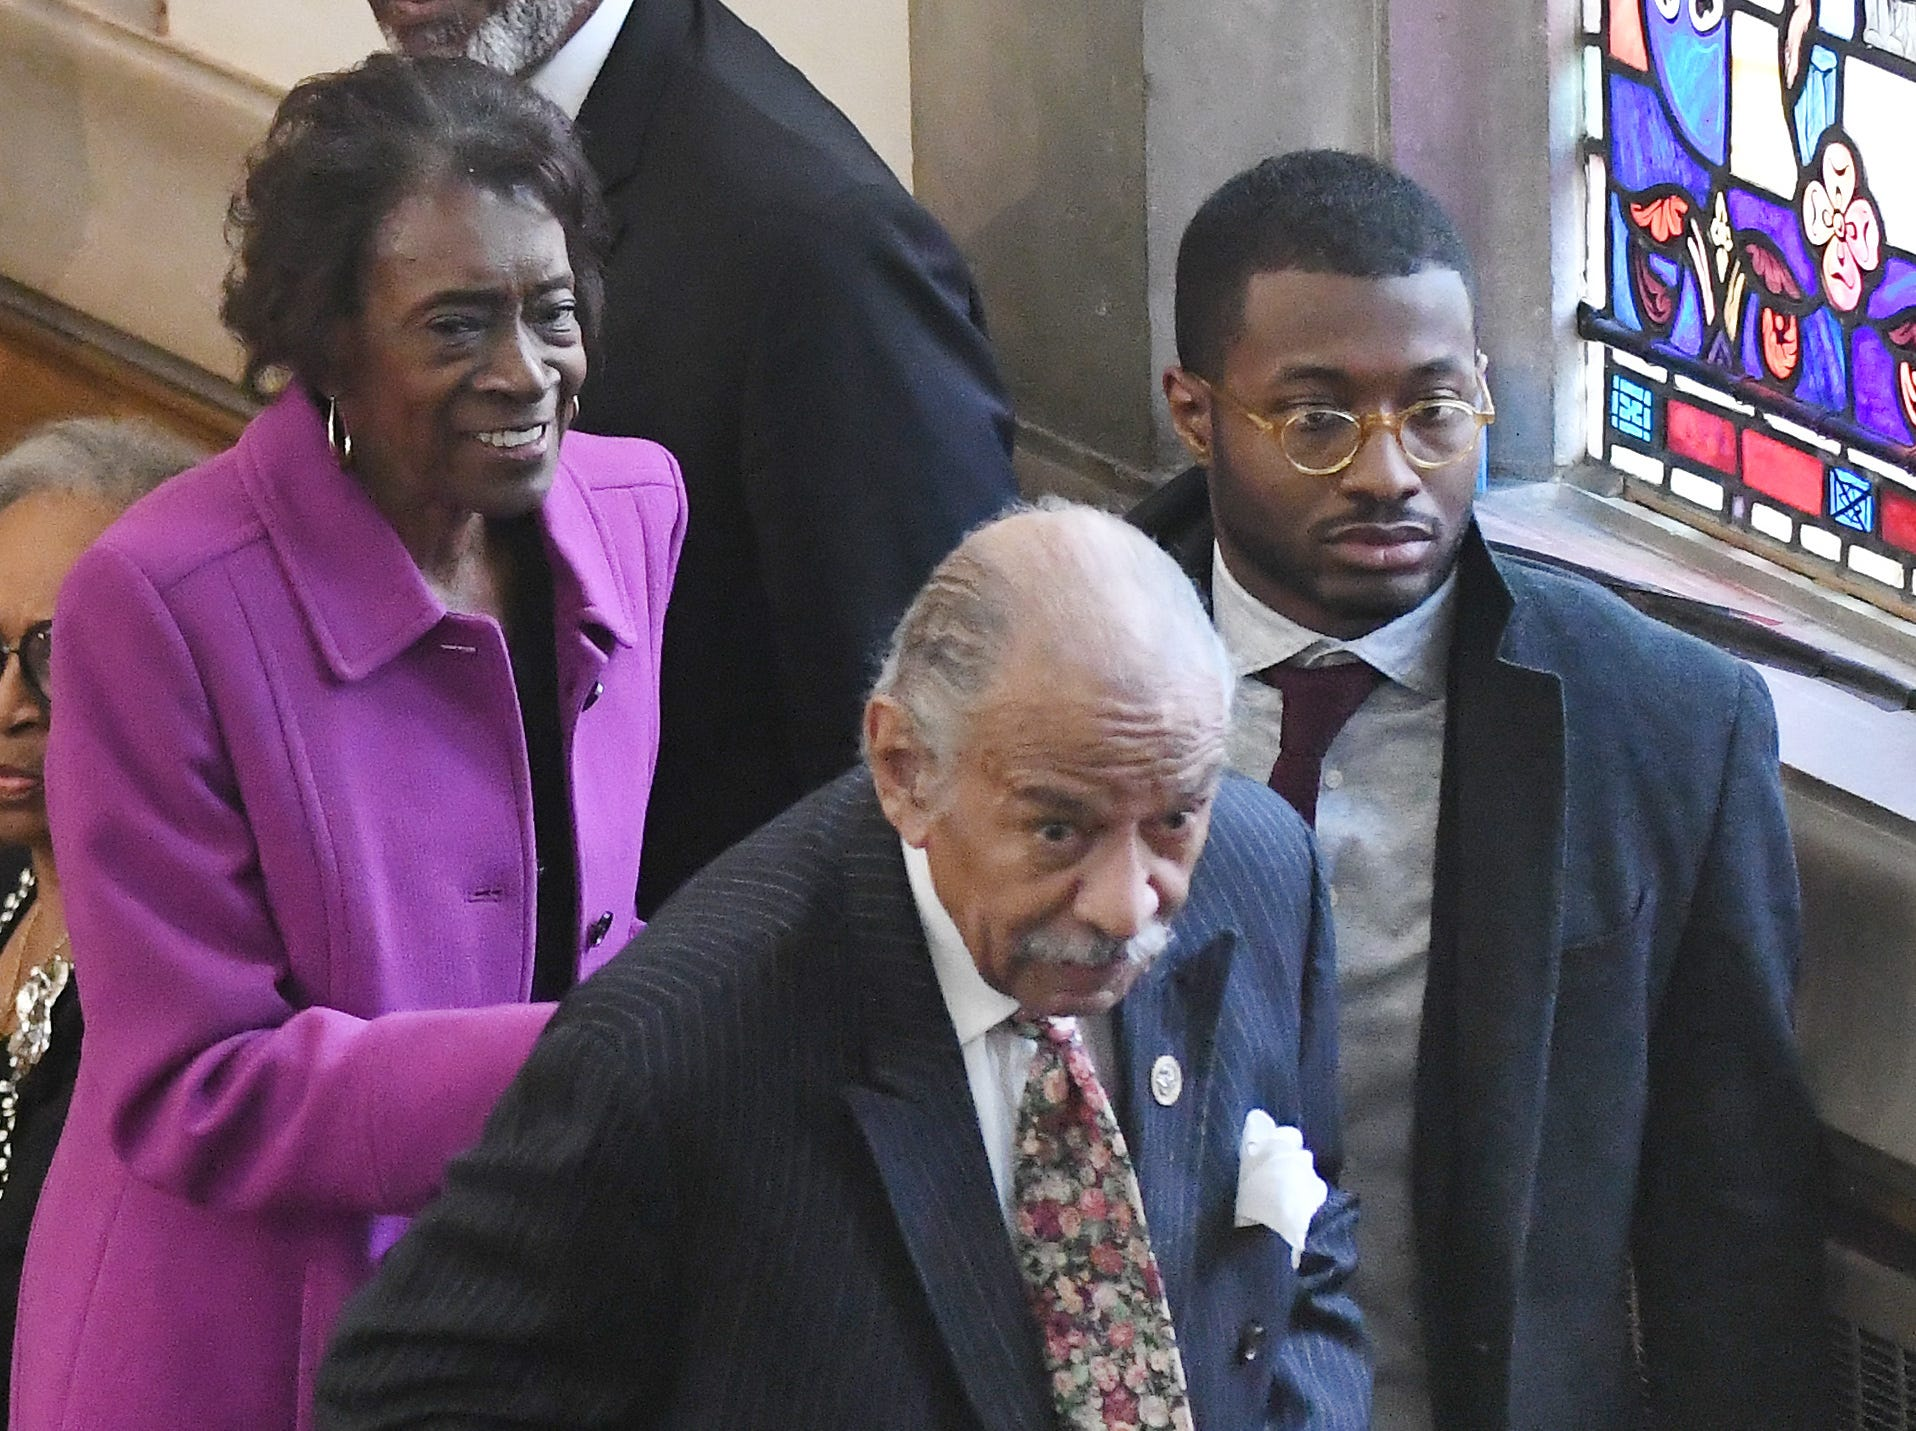 Former U.S. Representative John Conyers leaves the church after the funeral of Judge Damon Keith.